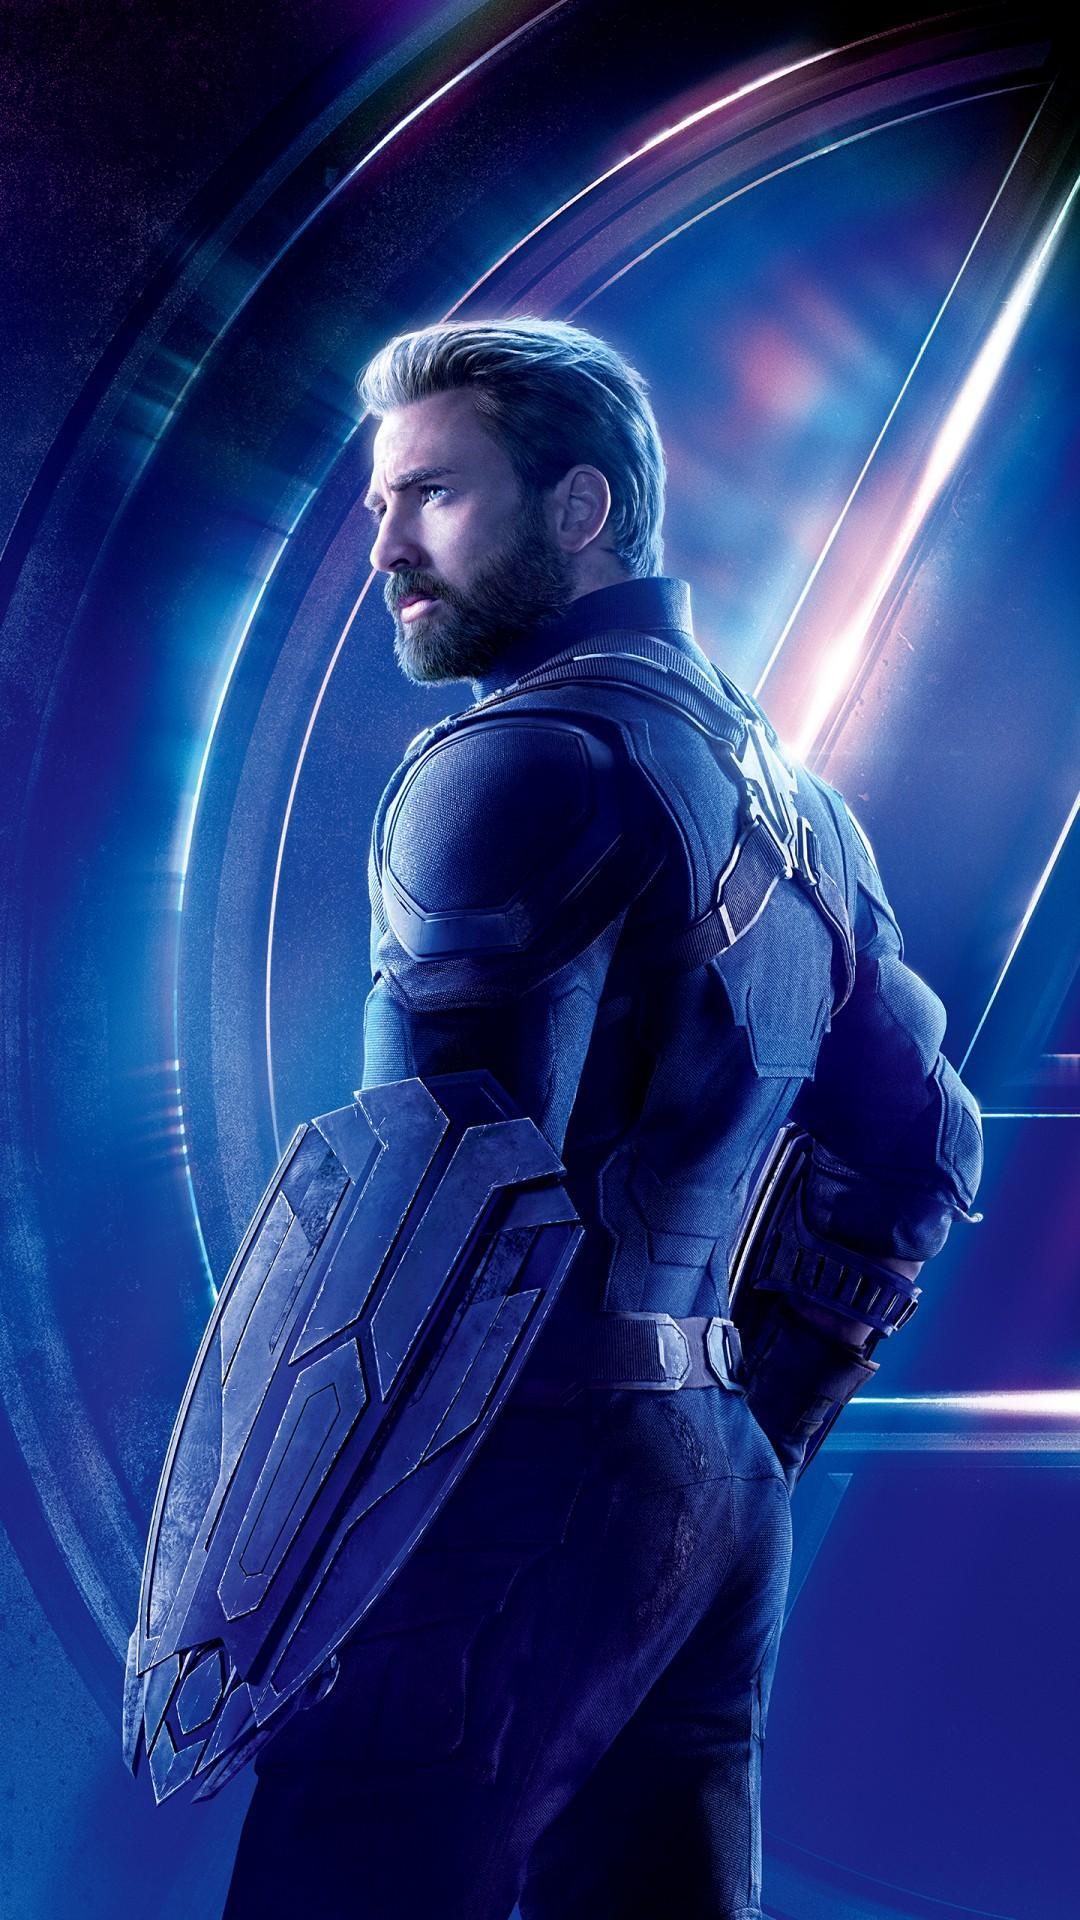 Avengers Endgame Wallpapers Hd 4k For Android Apk Download